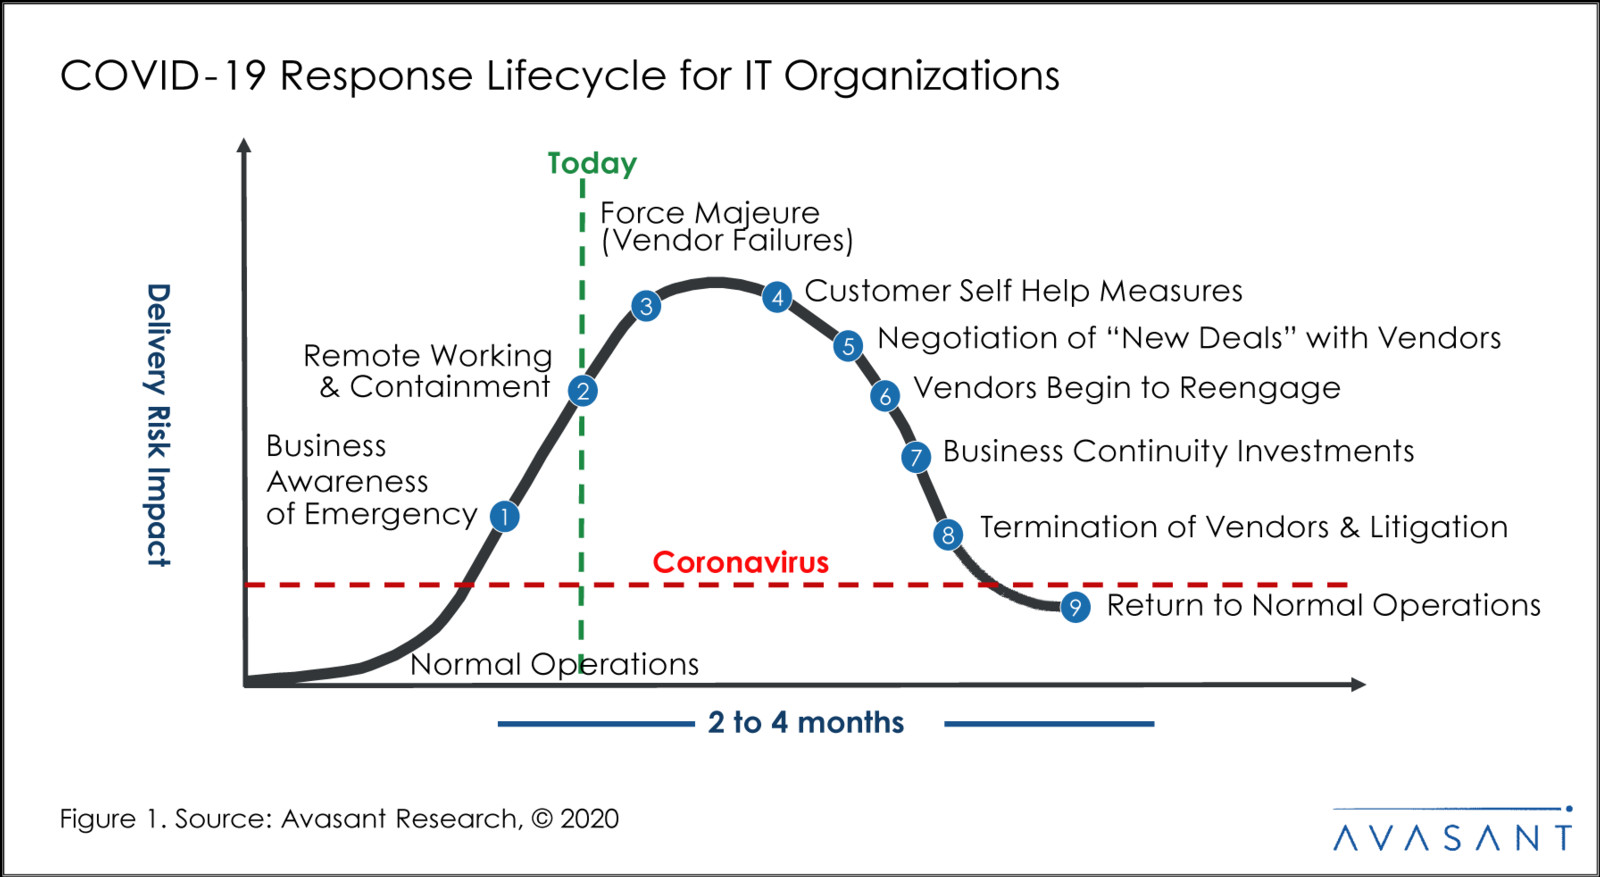 Covid-19 Response Lifecycle for IT Organizations